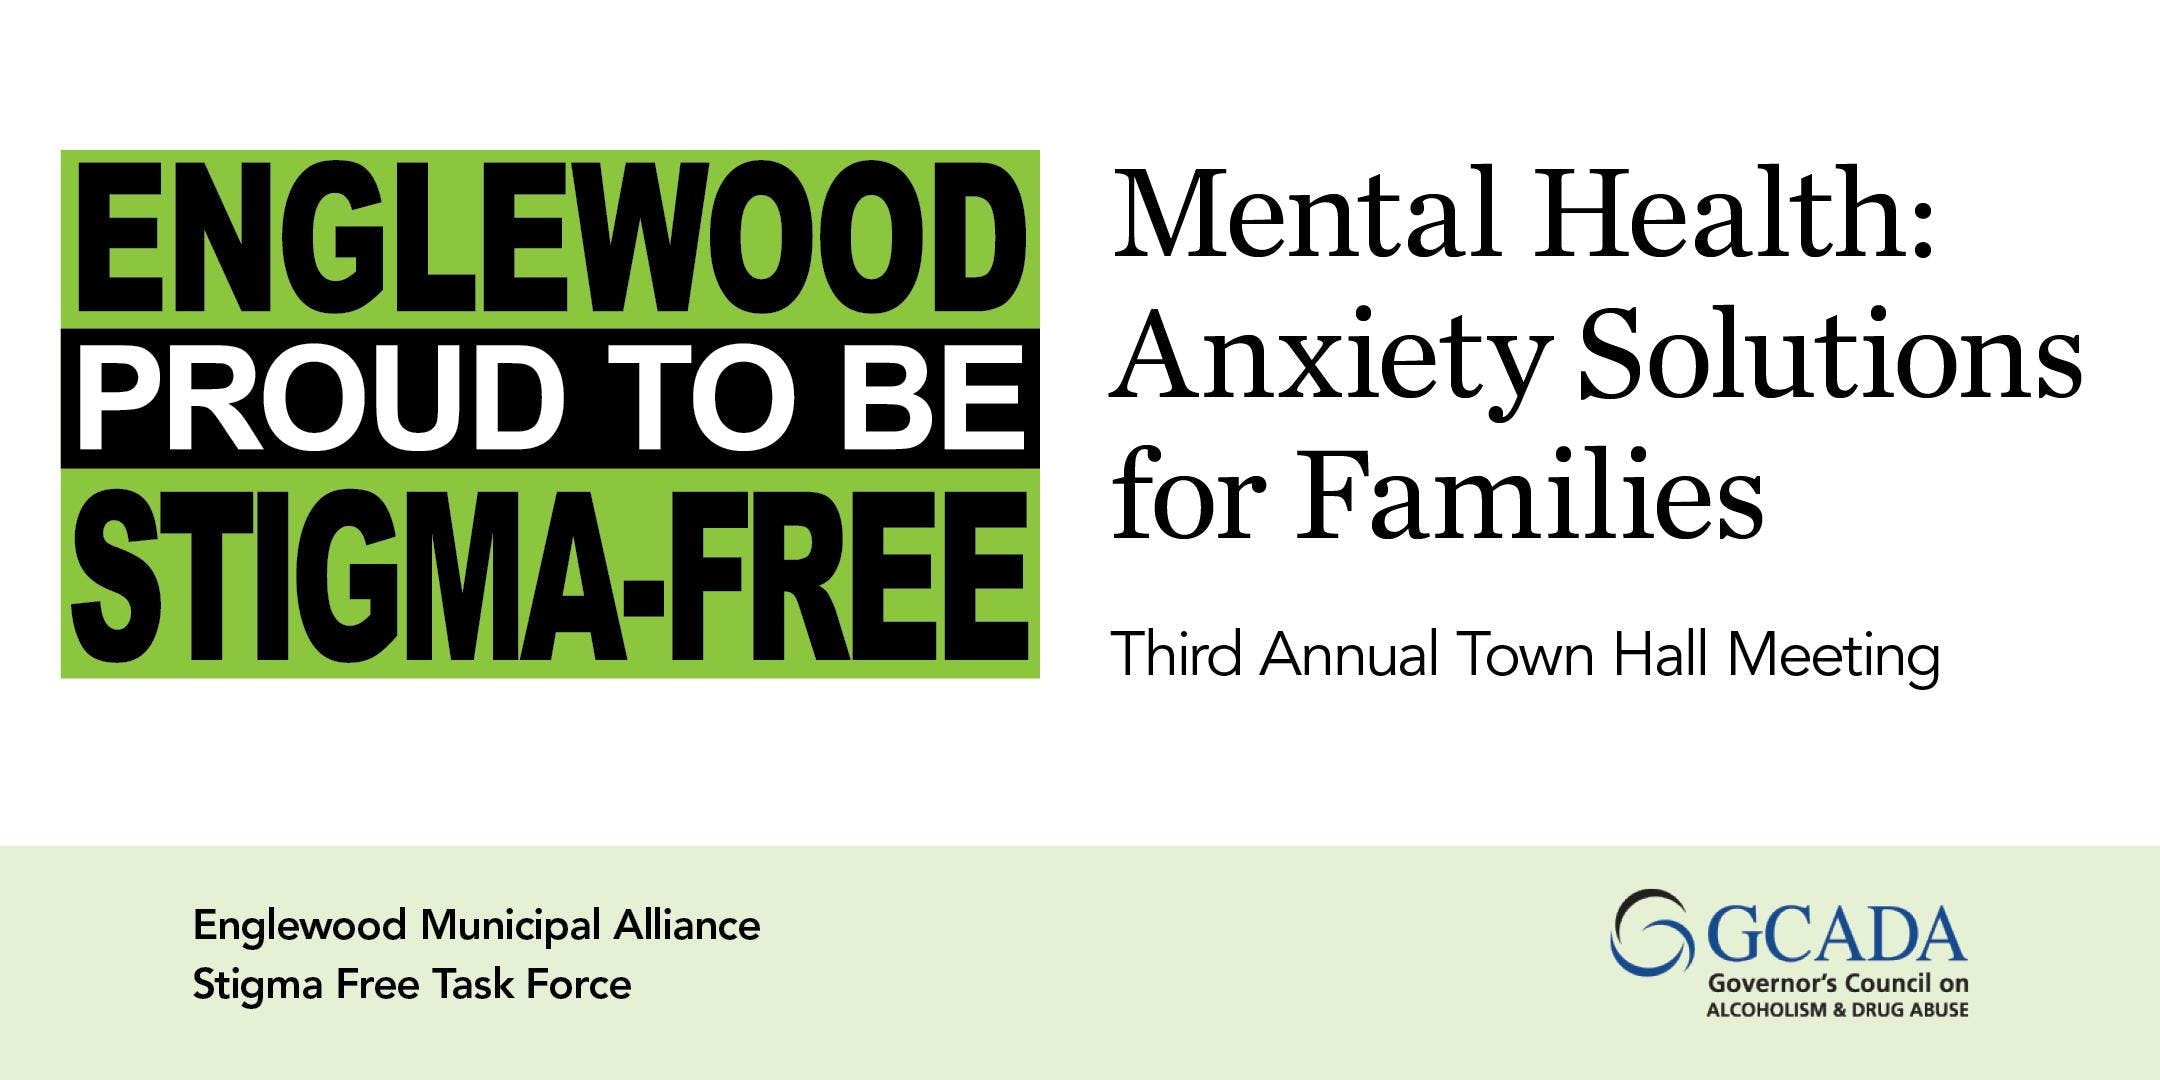 More info: Mental Health: Anxiety Solutions for Families